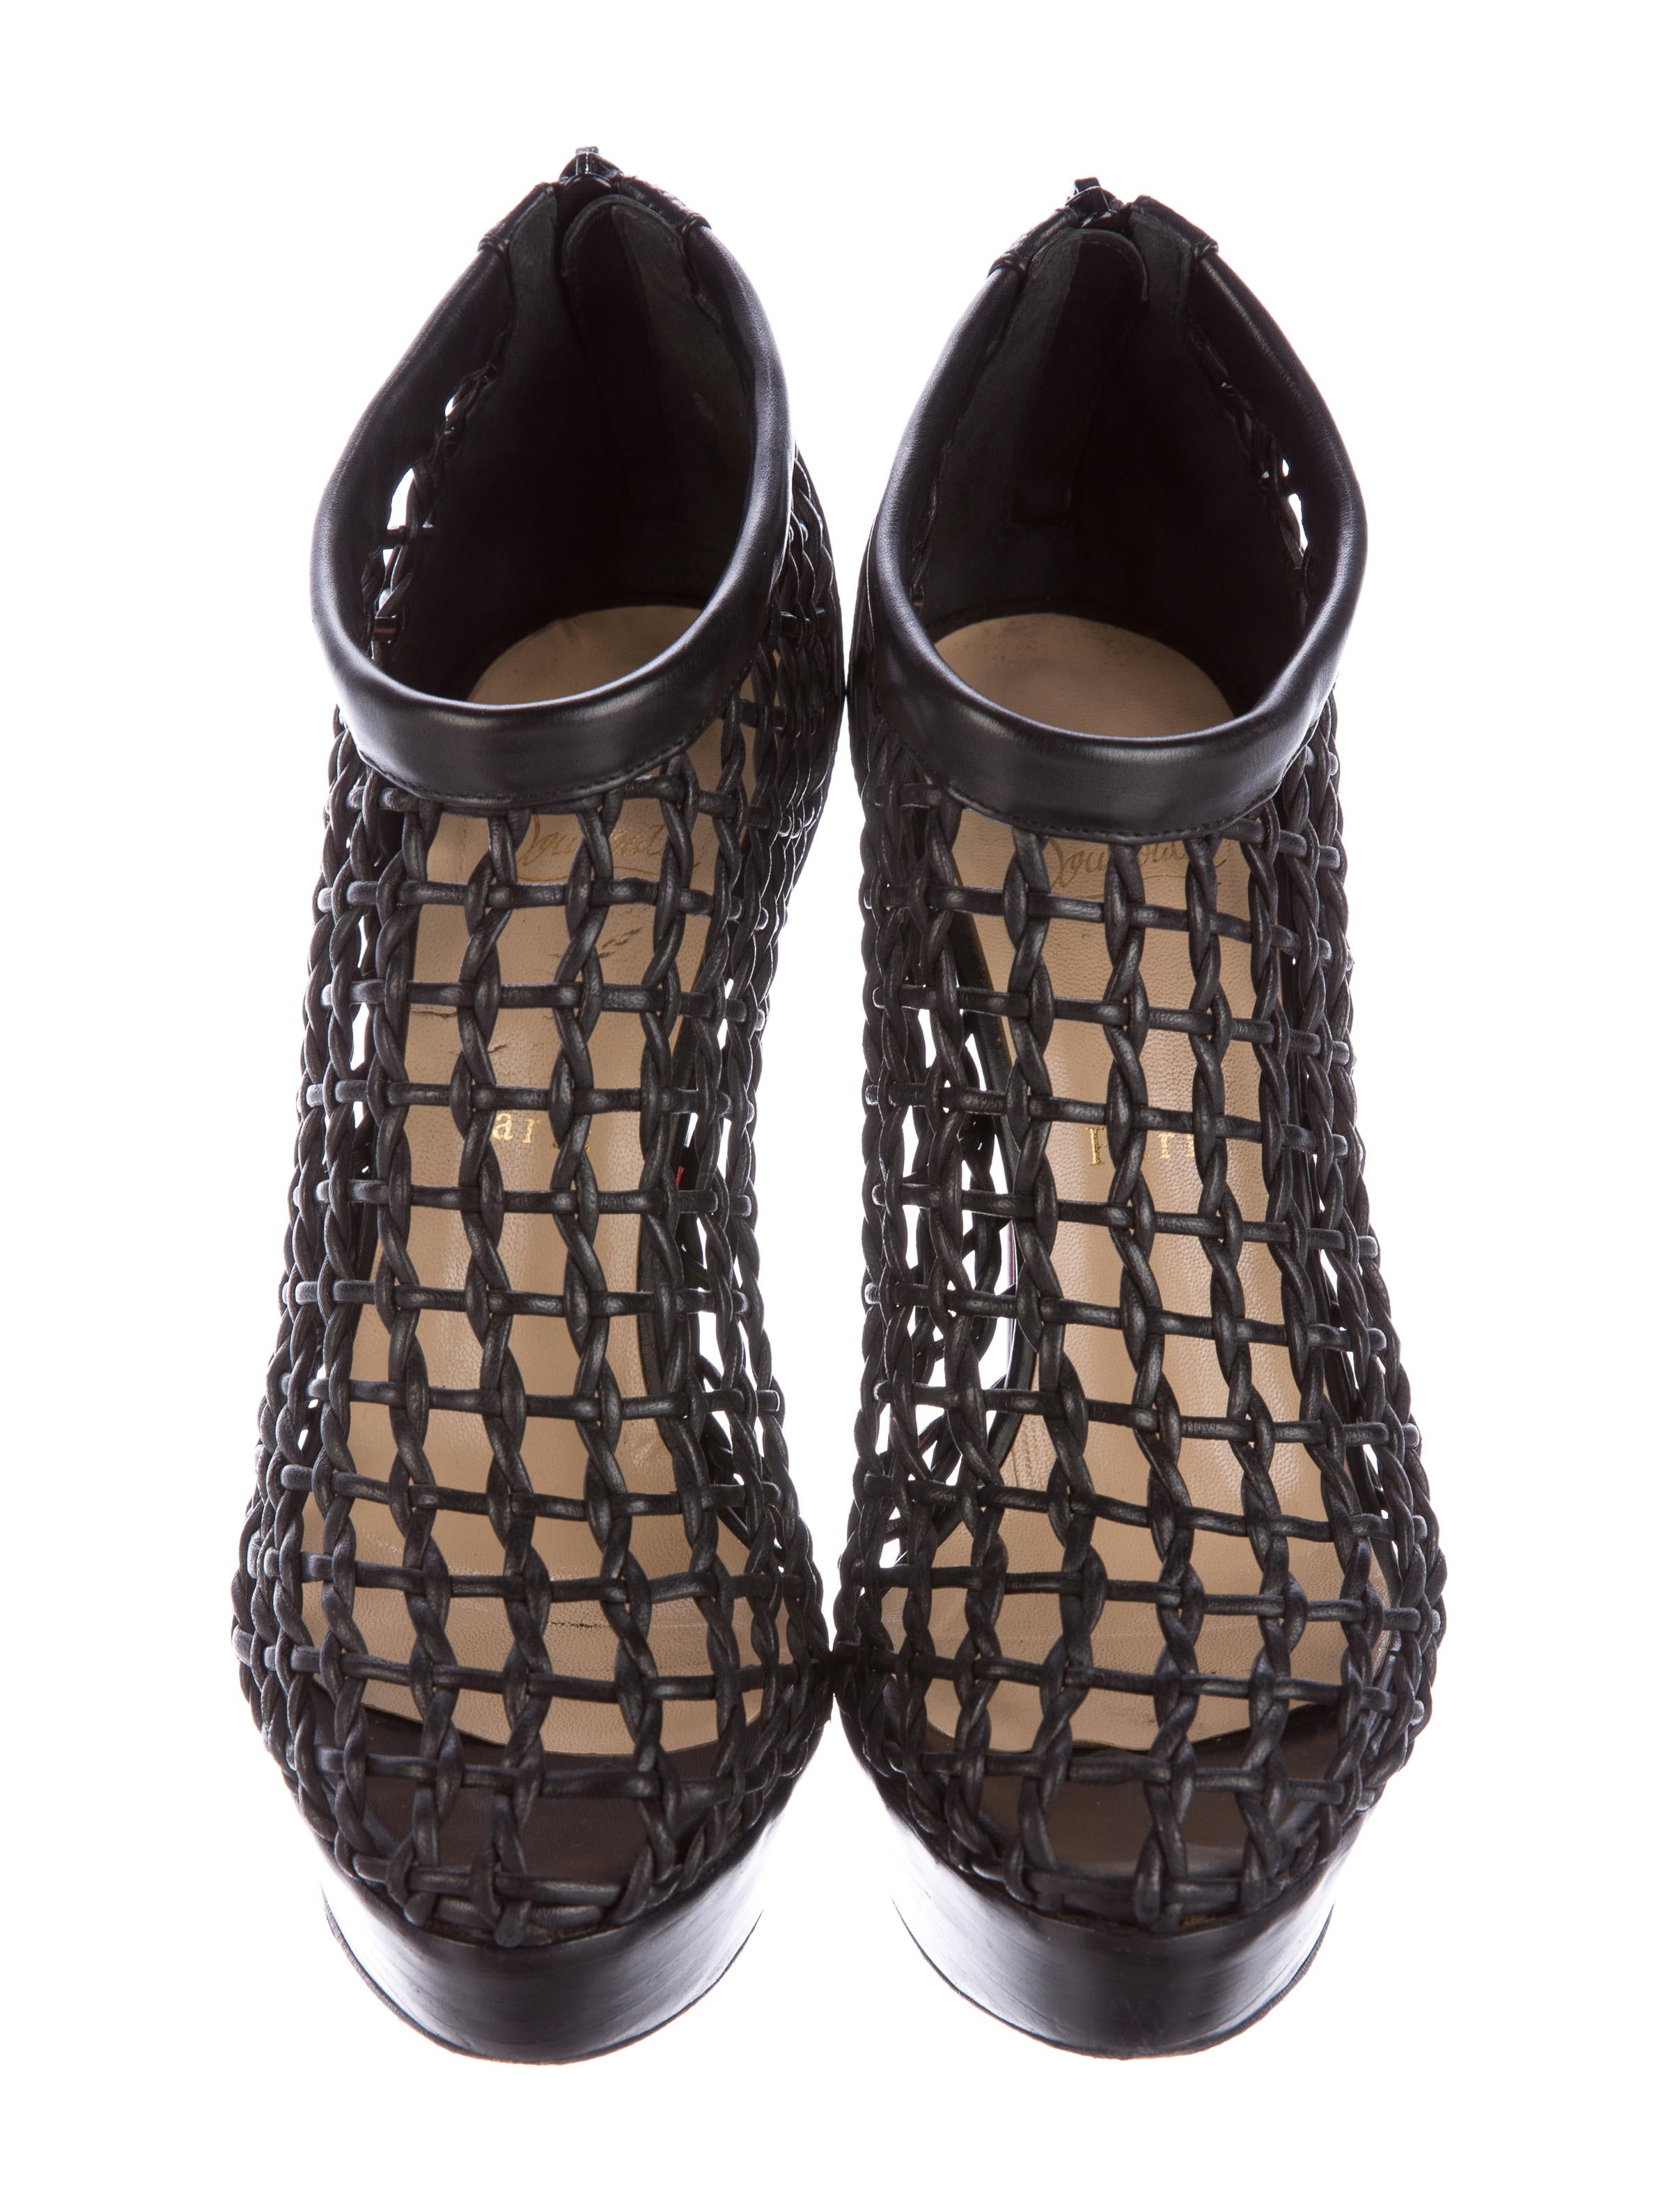 Christian Louboutin Coussin Caged Booties Shoes